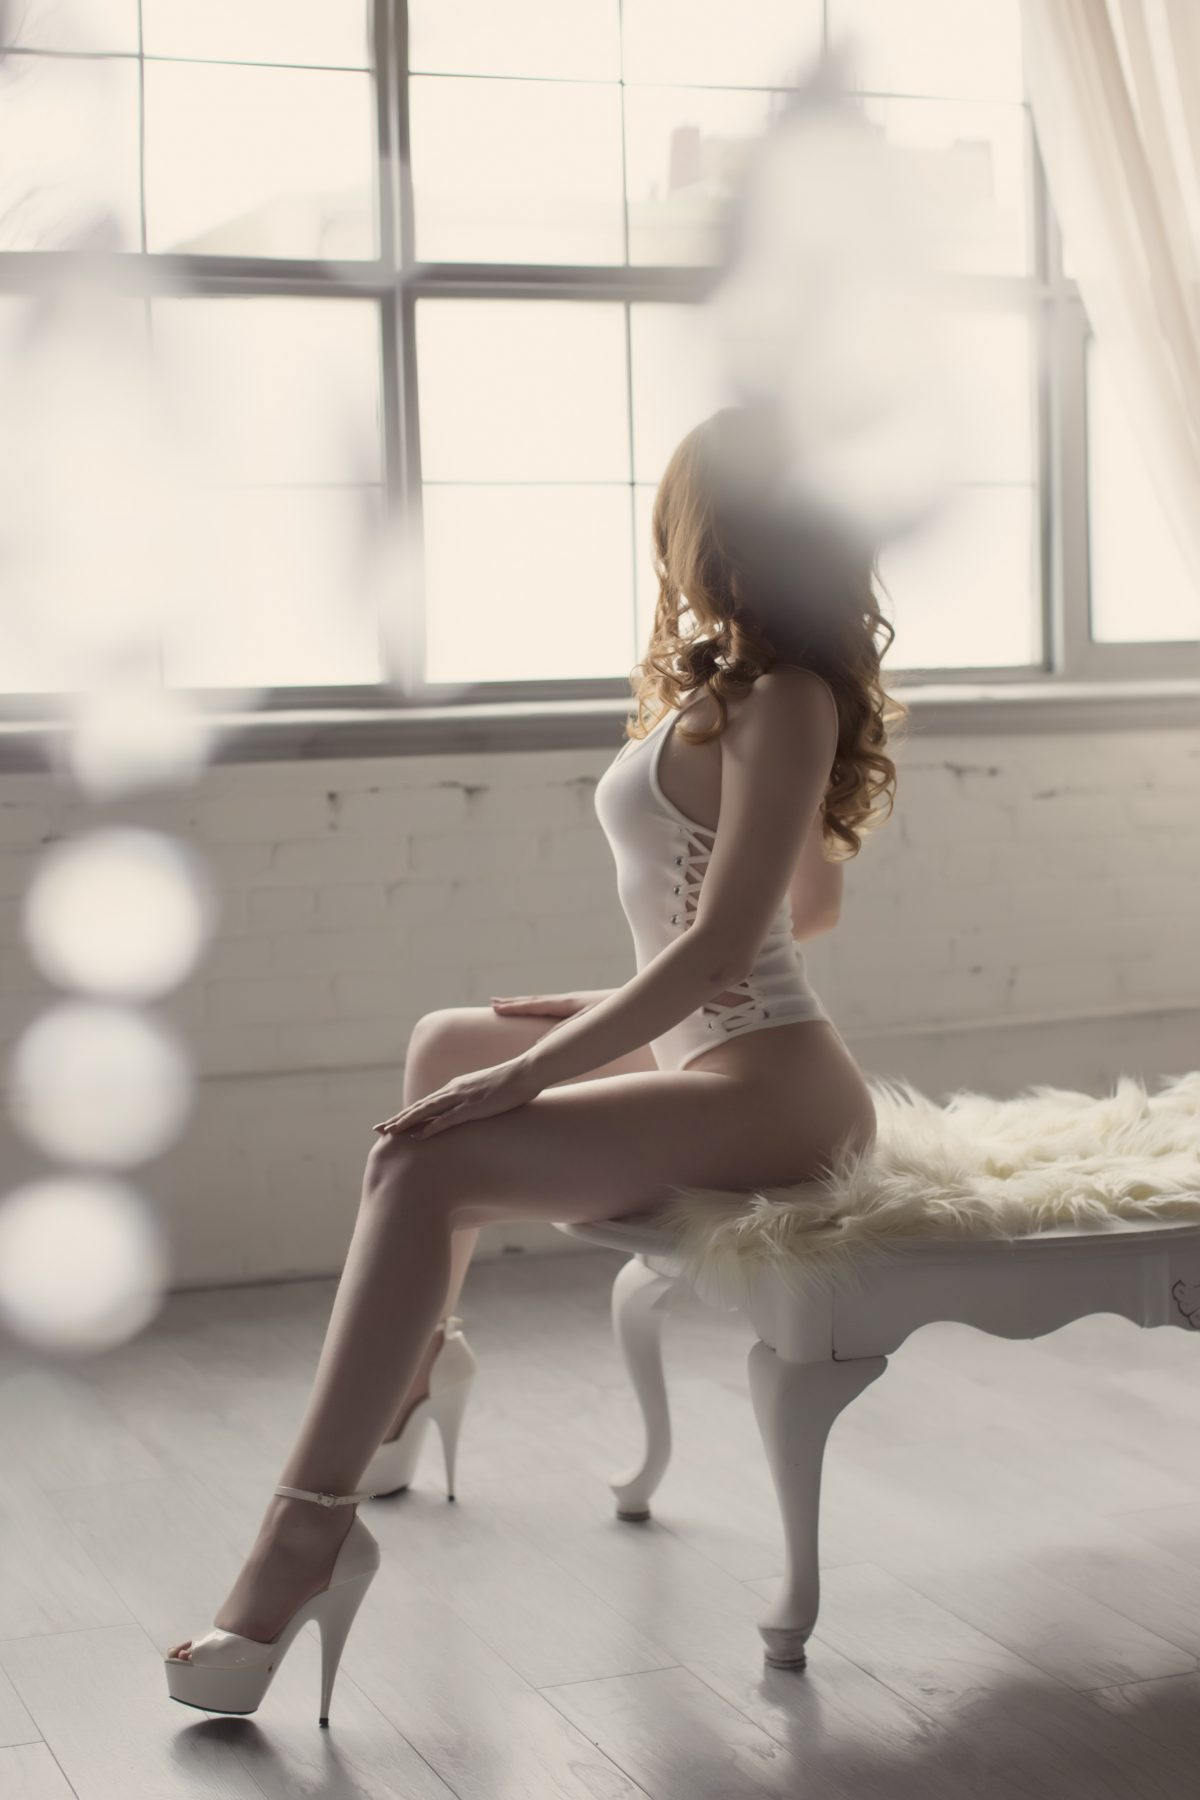 Toronto escorts companion upscale Cassidy Interests Duo Couple-friendly Non-smoking Age Young Figure Slender Petite Breasts Natural Hair Redhead Ethnicity European Tattoos None Arrival